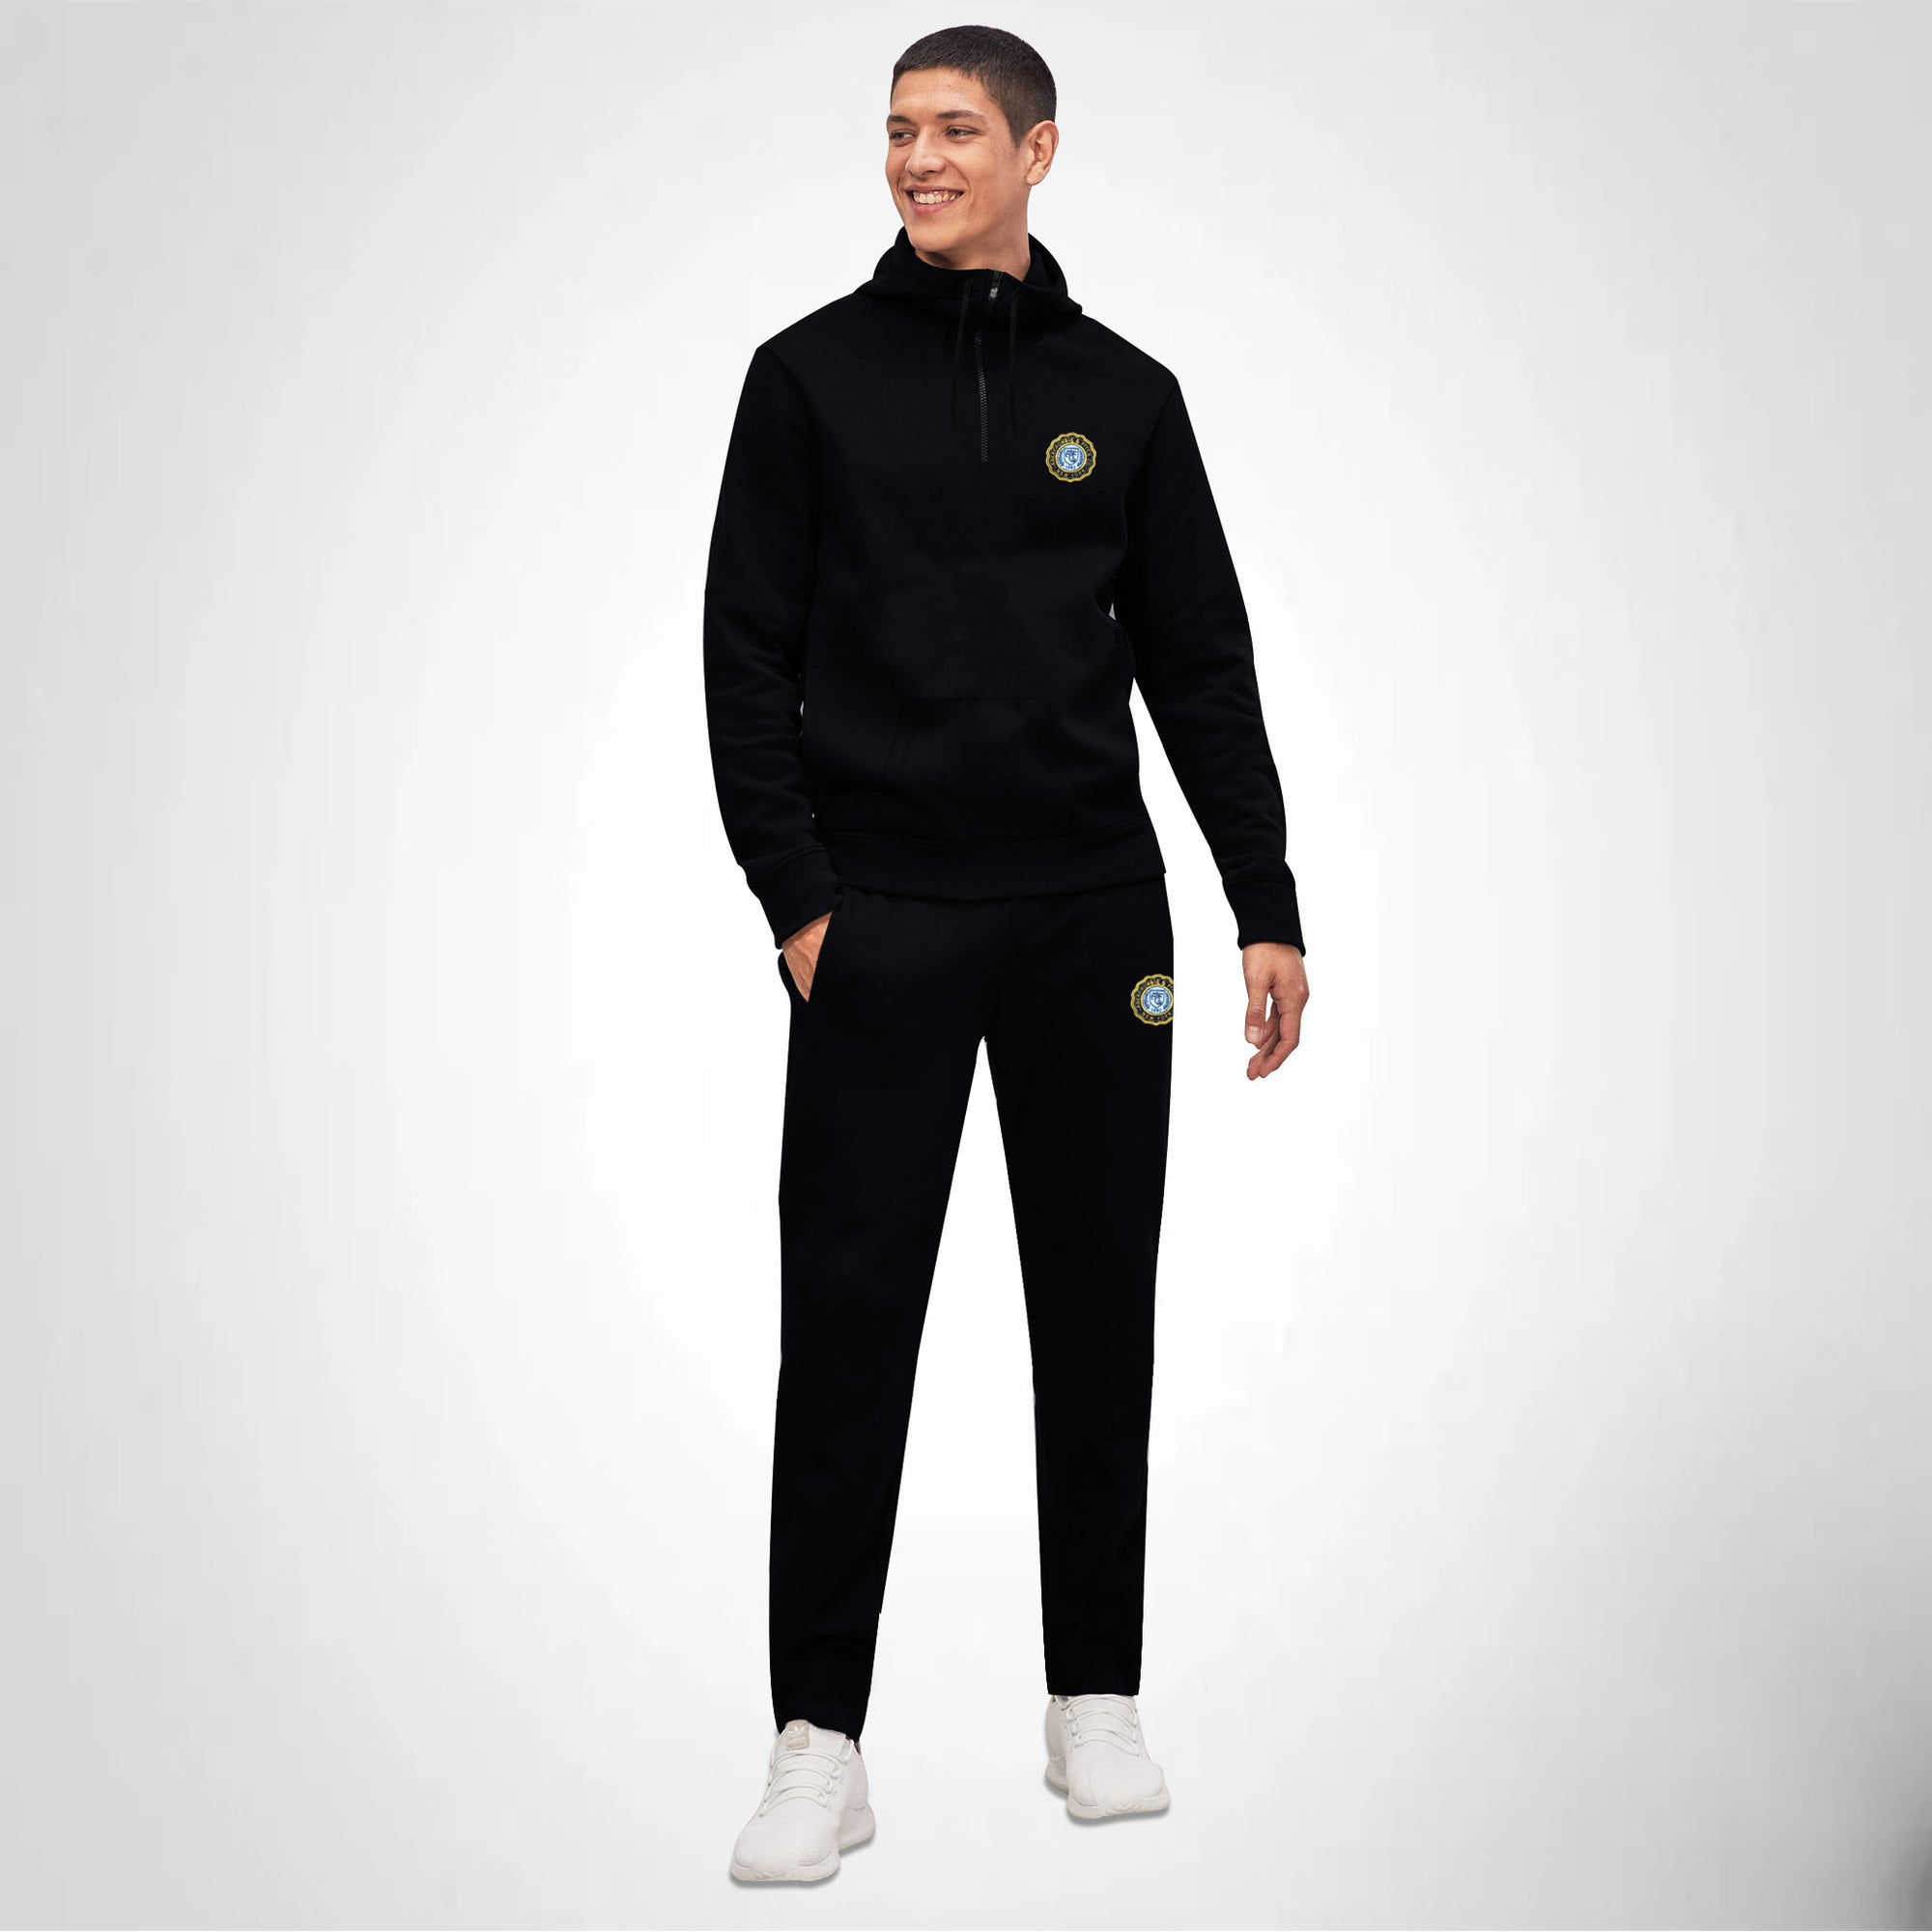 0496f57db6959 A F Slim Fit 1 4 Zip Straight Fit Fleece Track Suit For Men-Black-BE66 -  BrandsEgo